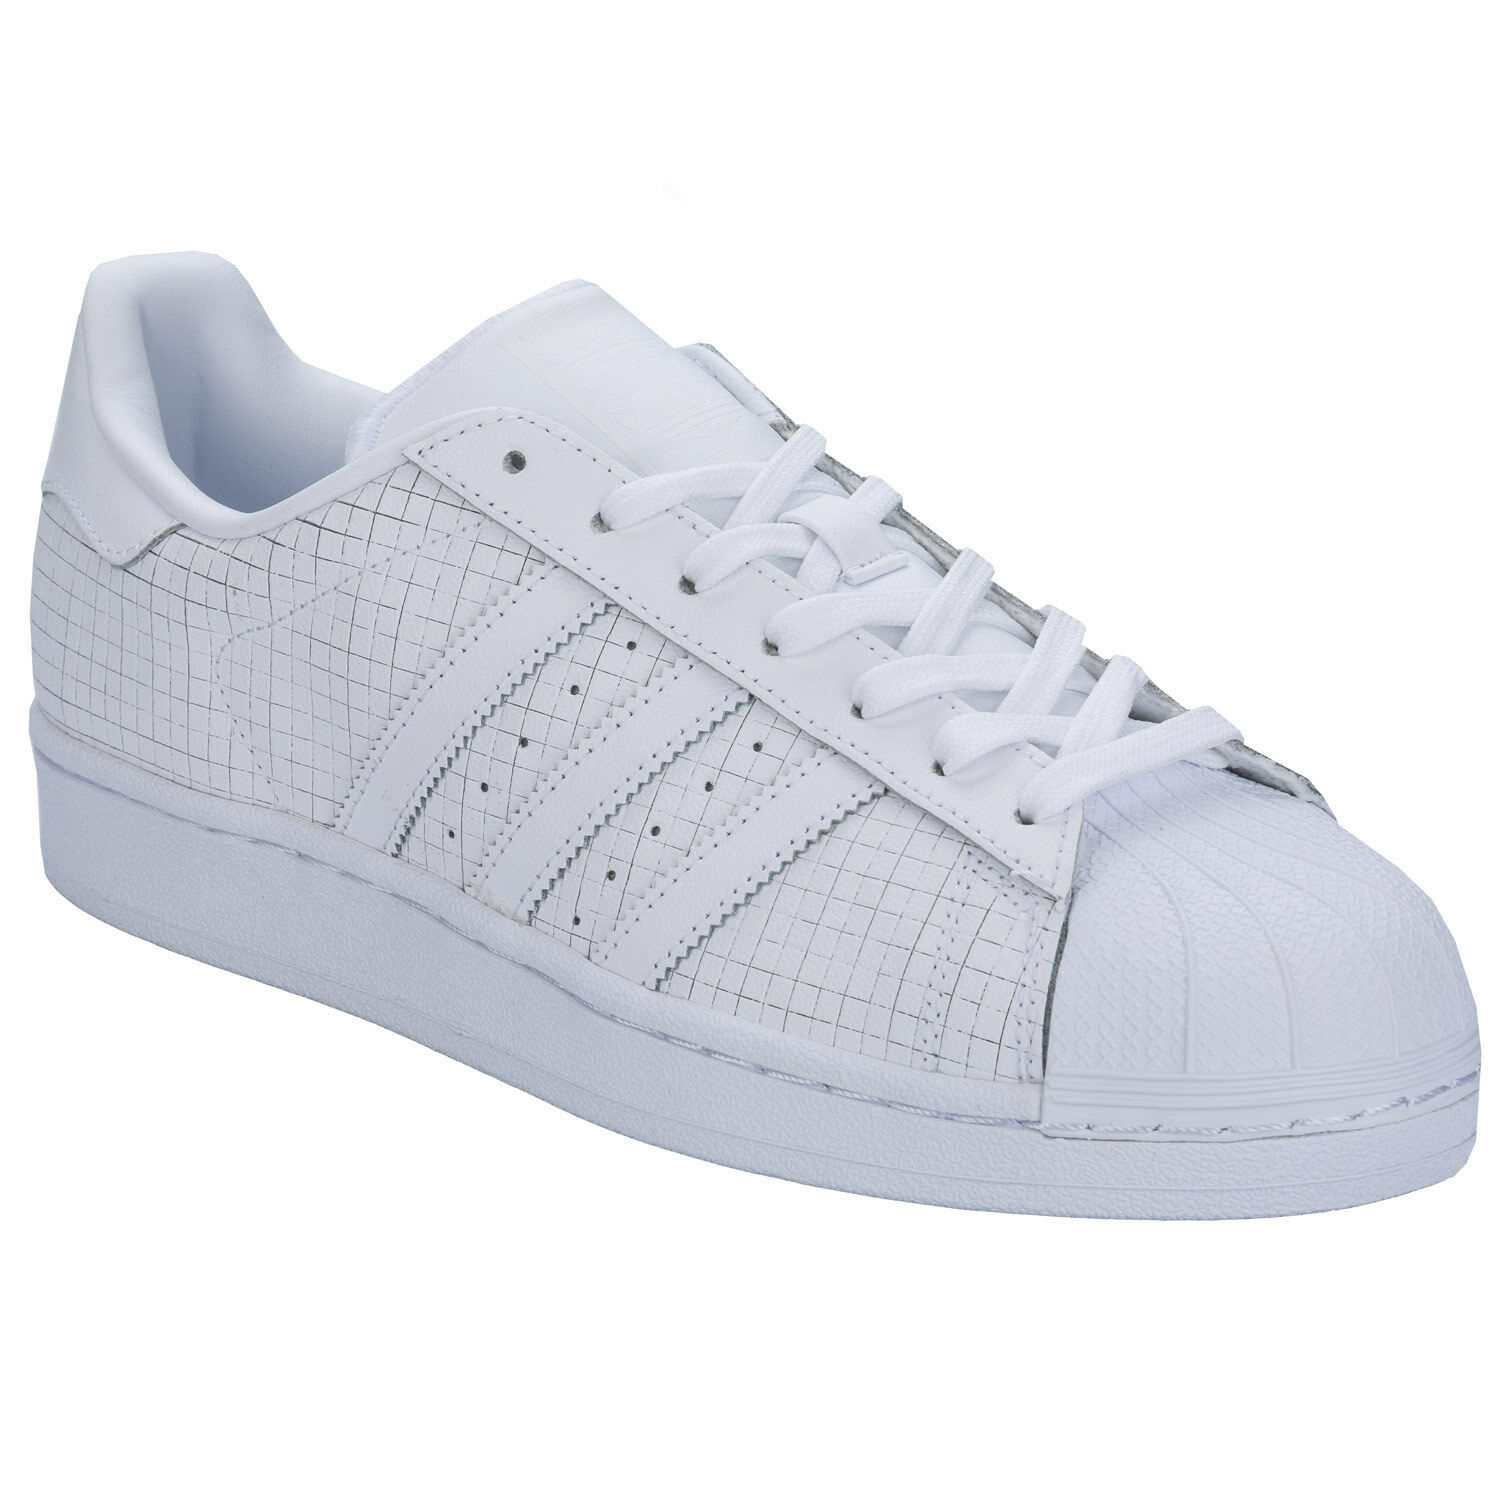 Adidas Originals Superstar Trainers Men's Leather shoes - Triple White - AQ8334